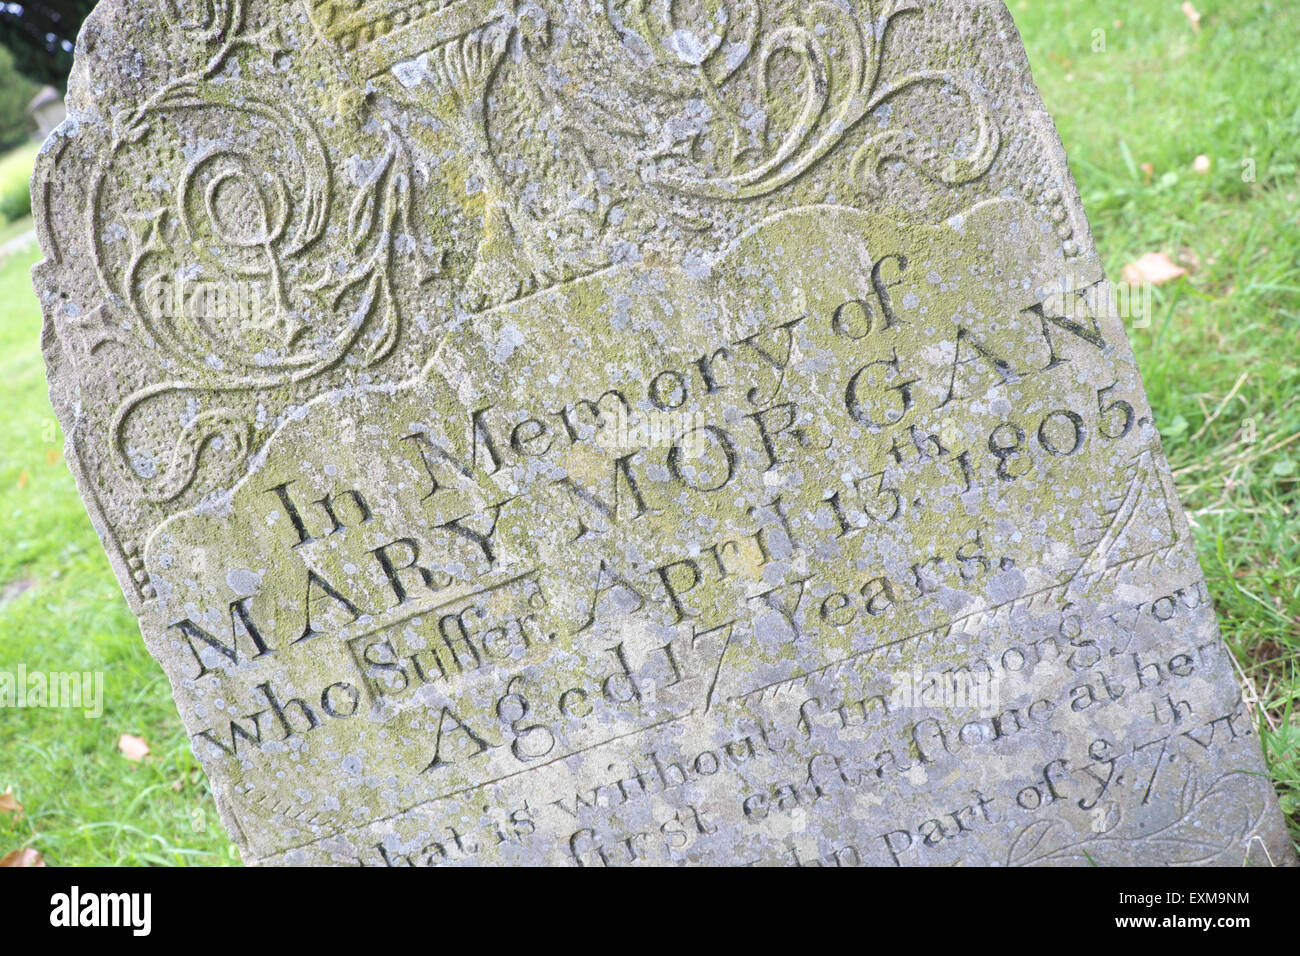 Presteigne Wales, Gravestone of 17 year old Mary Morgan executed in 1805 for infanticide, killing her own new born - Stock Image